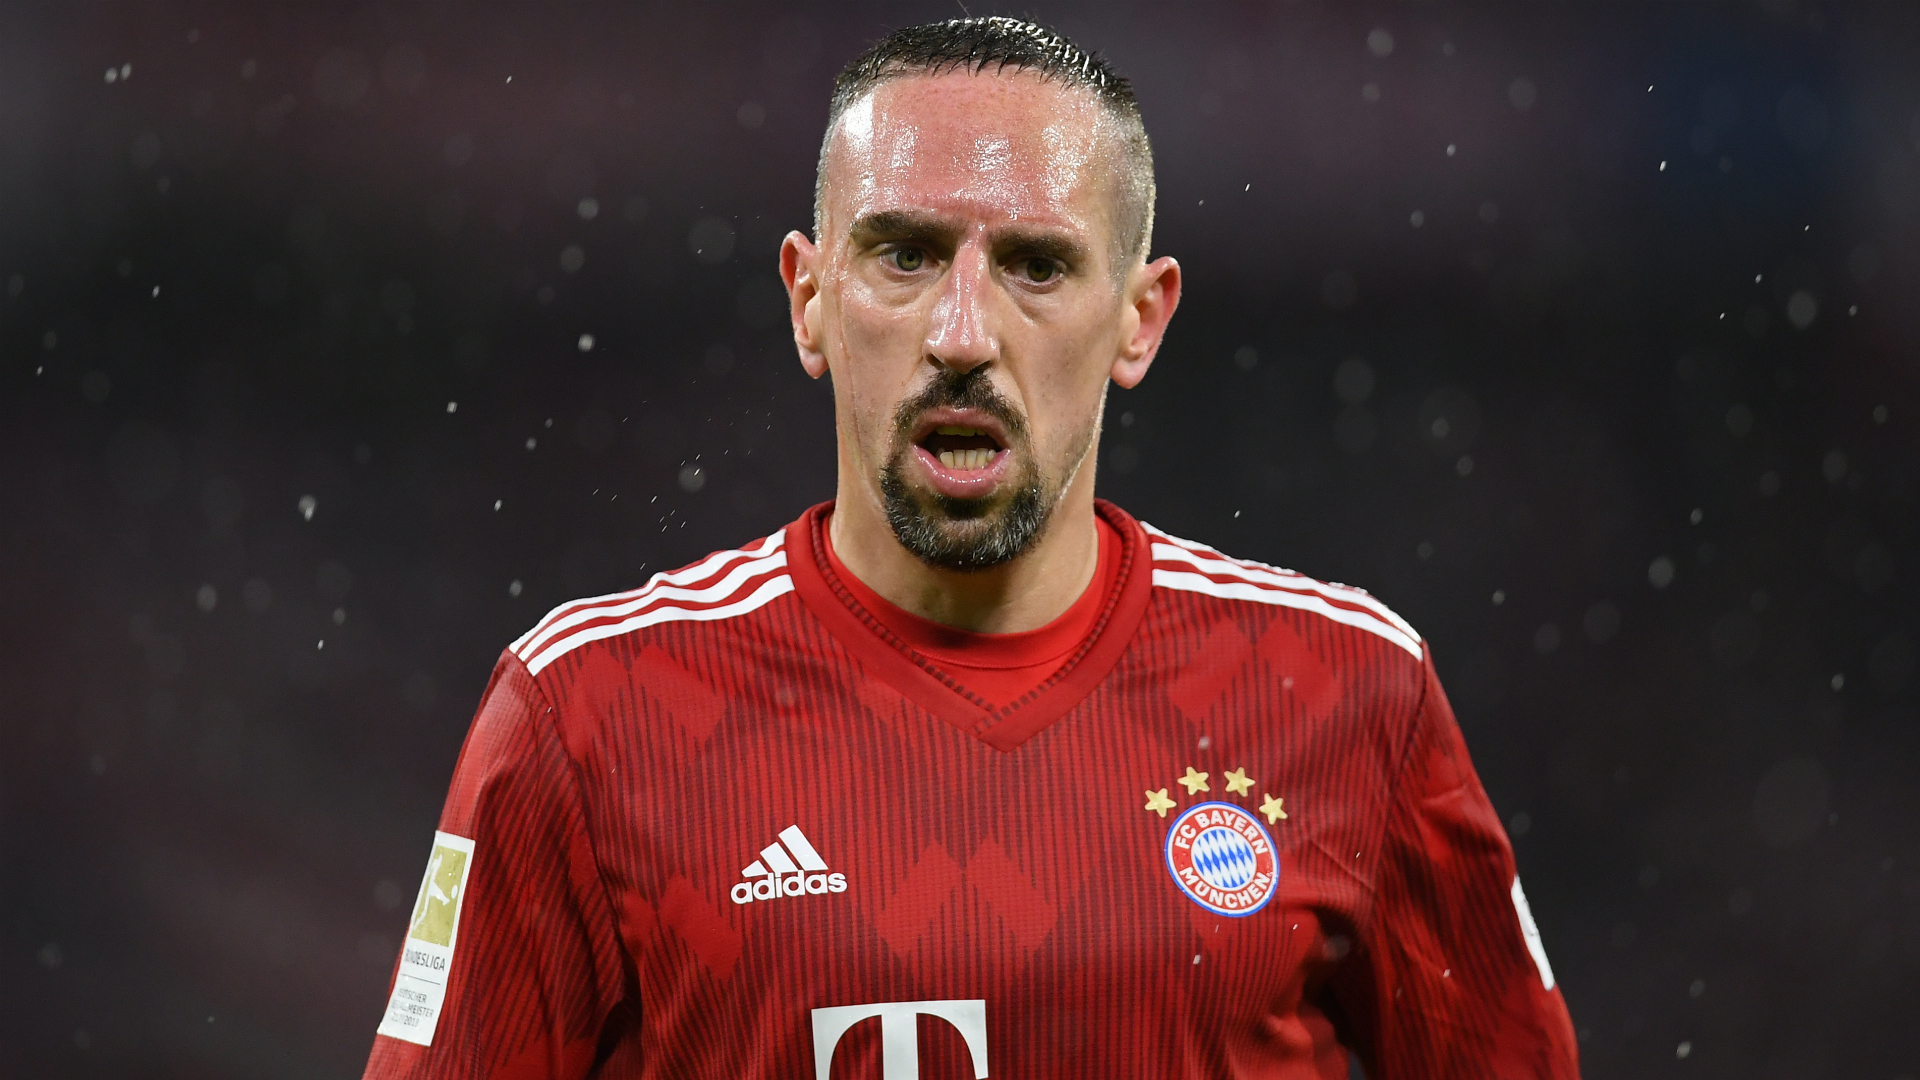 Bayern star Ribery open to Babbel link-up in A-League